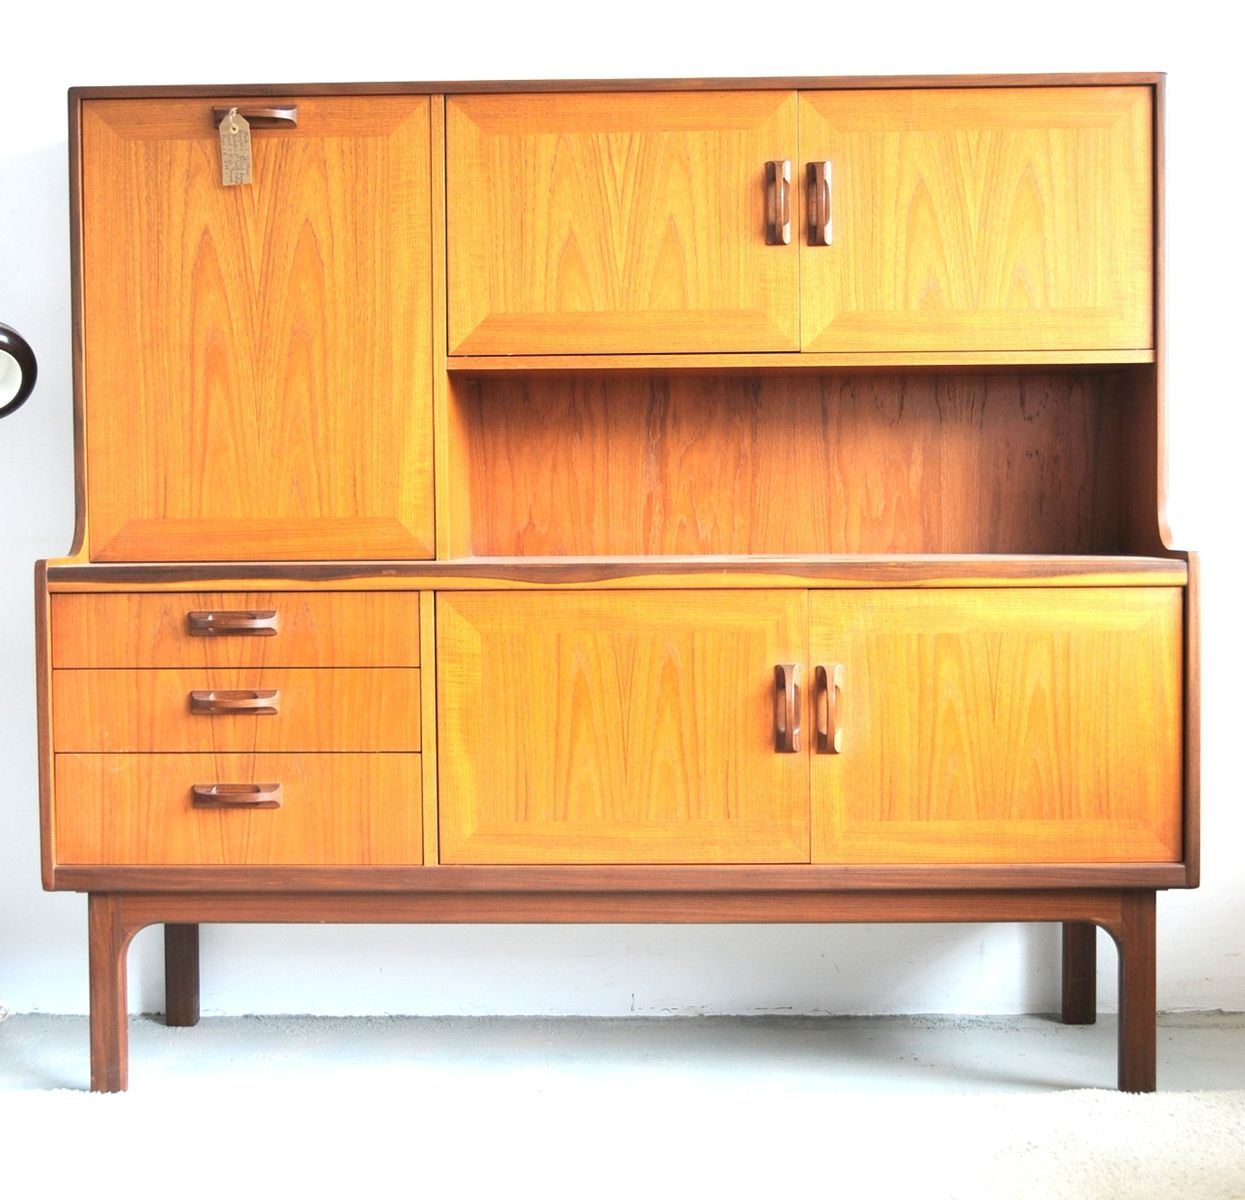 vintage highboard by g plan for sale at pamono. Black Bedroom Furniture Sets. Home Design Ideas